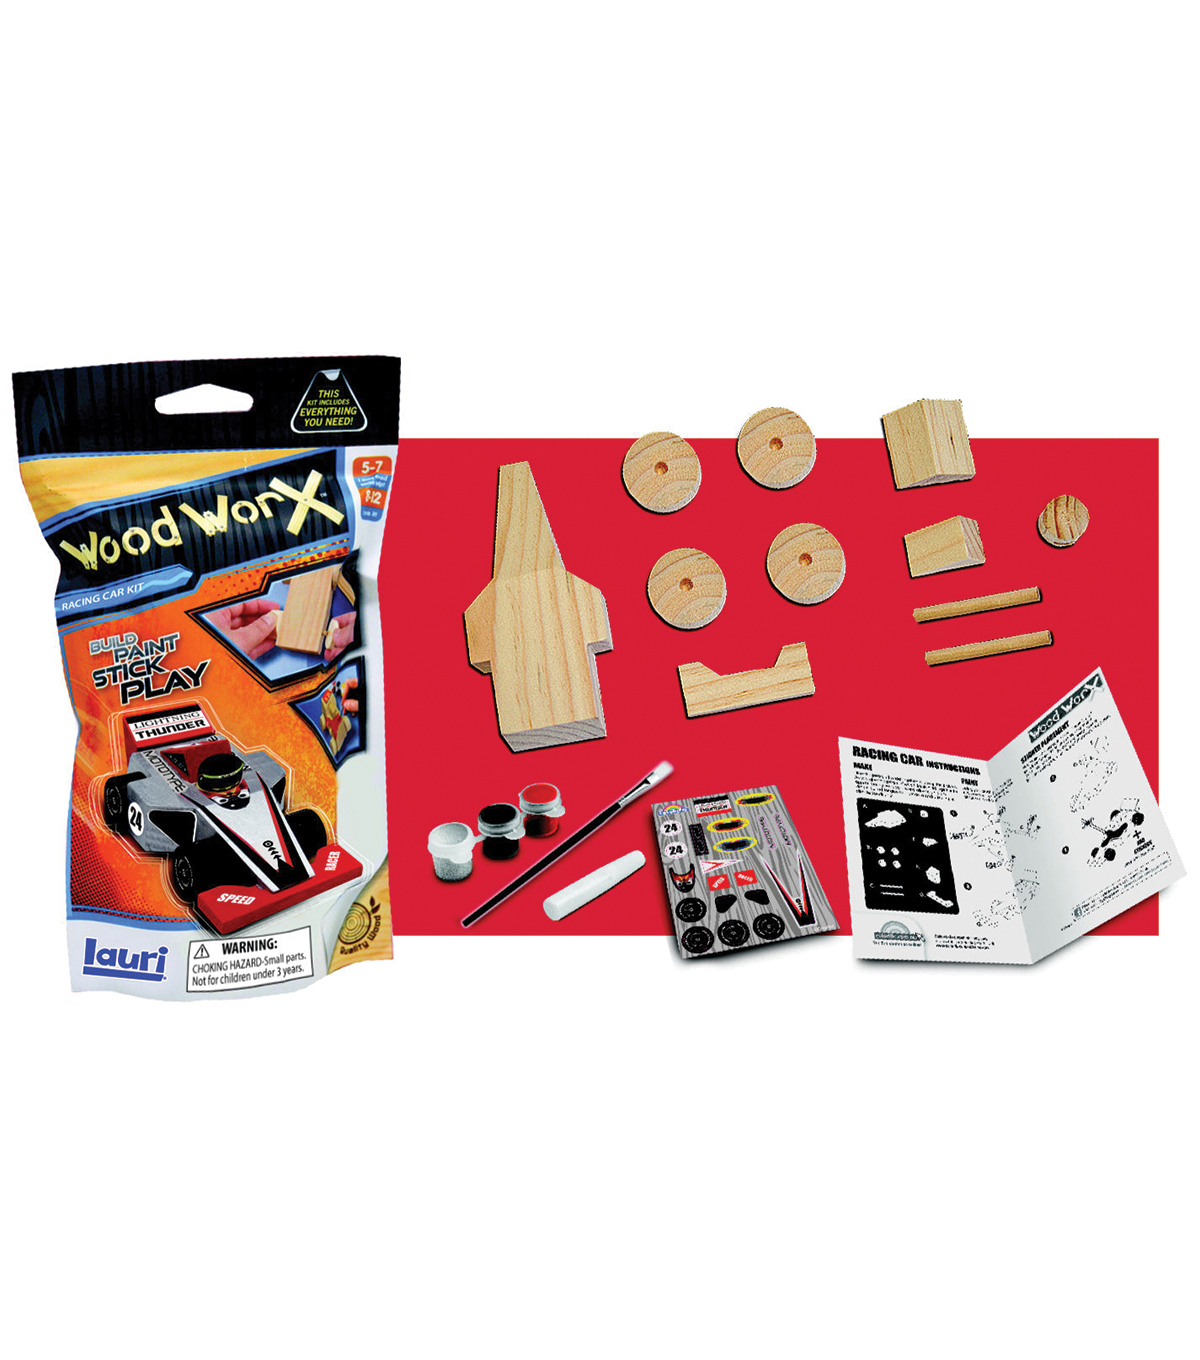 Wood WorX Kit-Racing Car